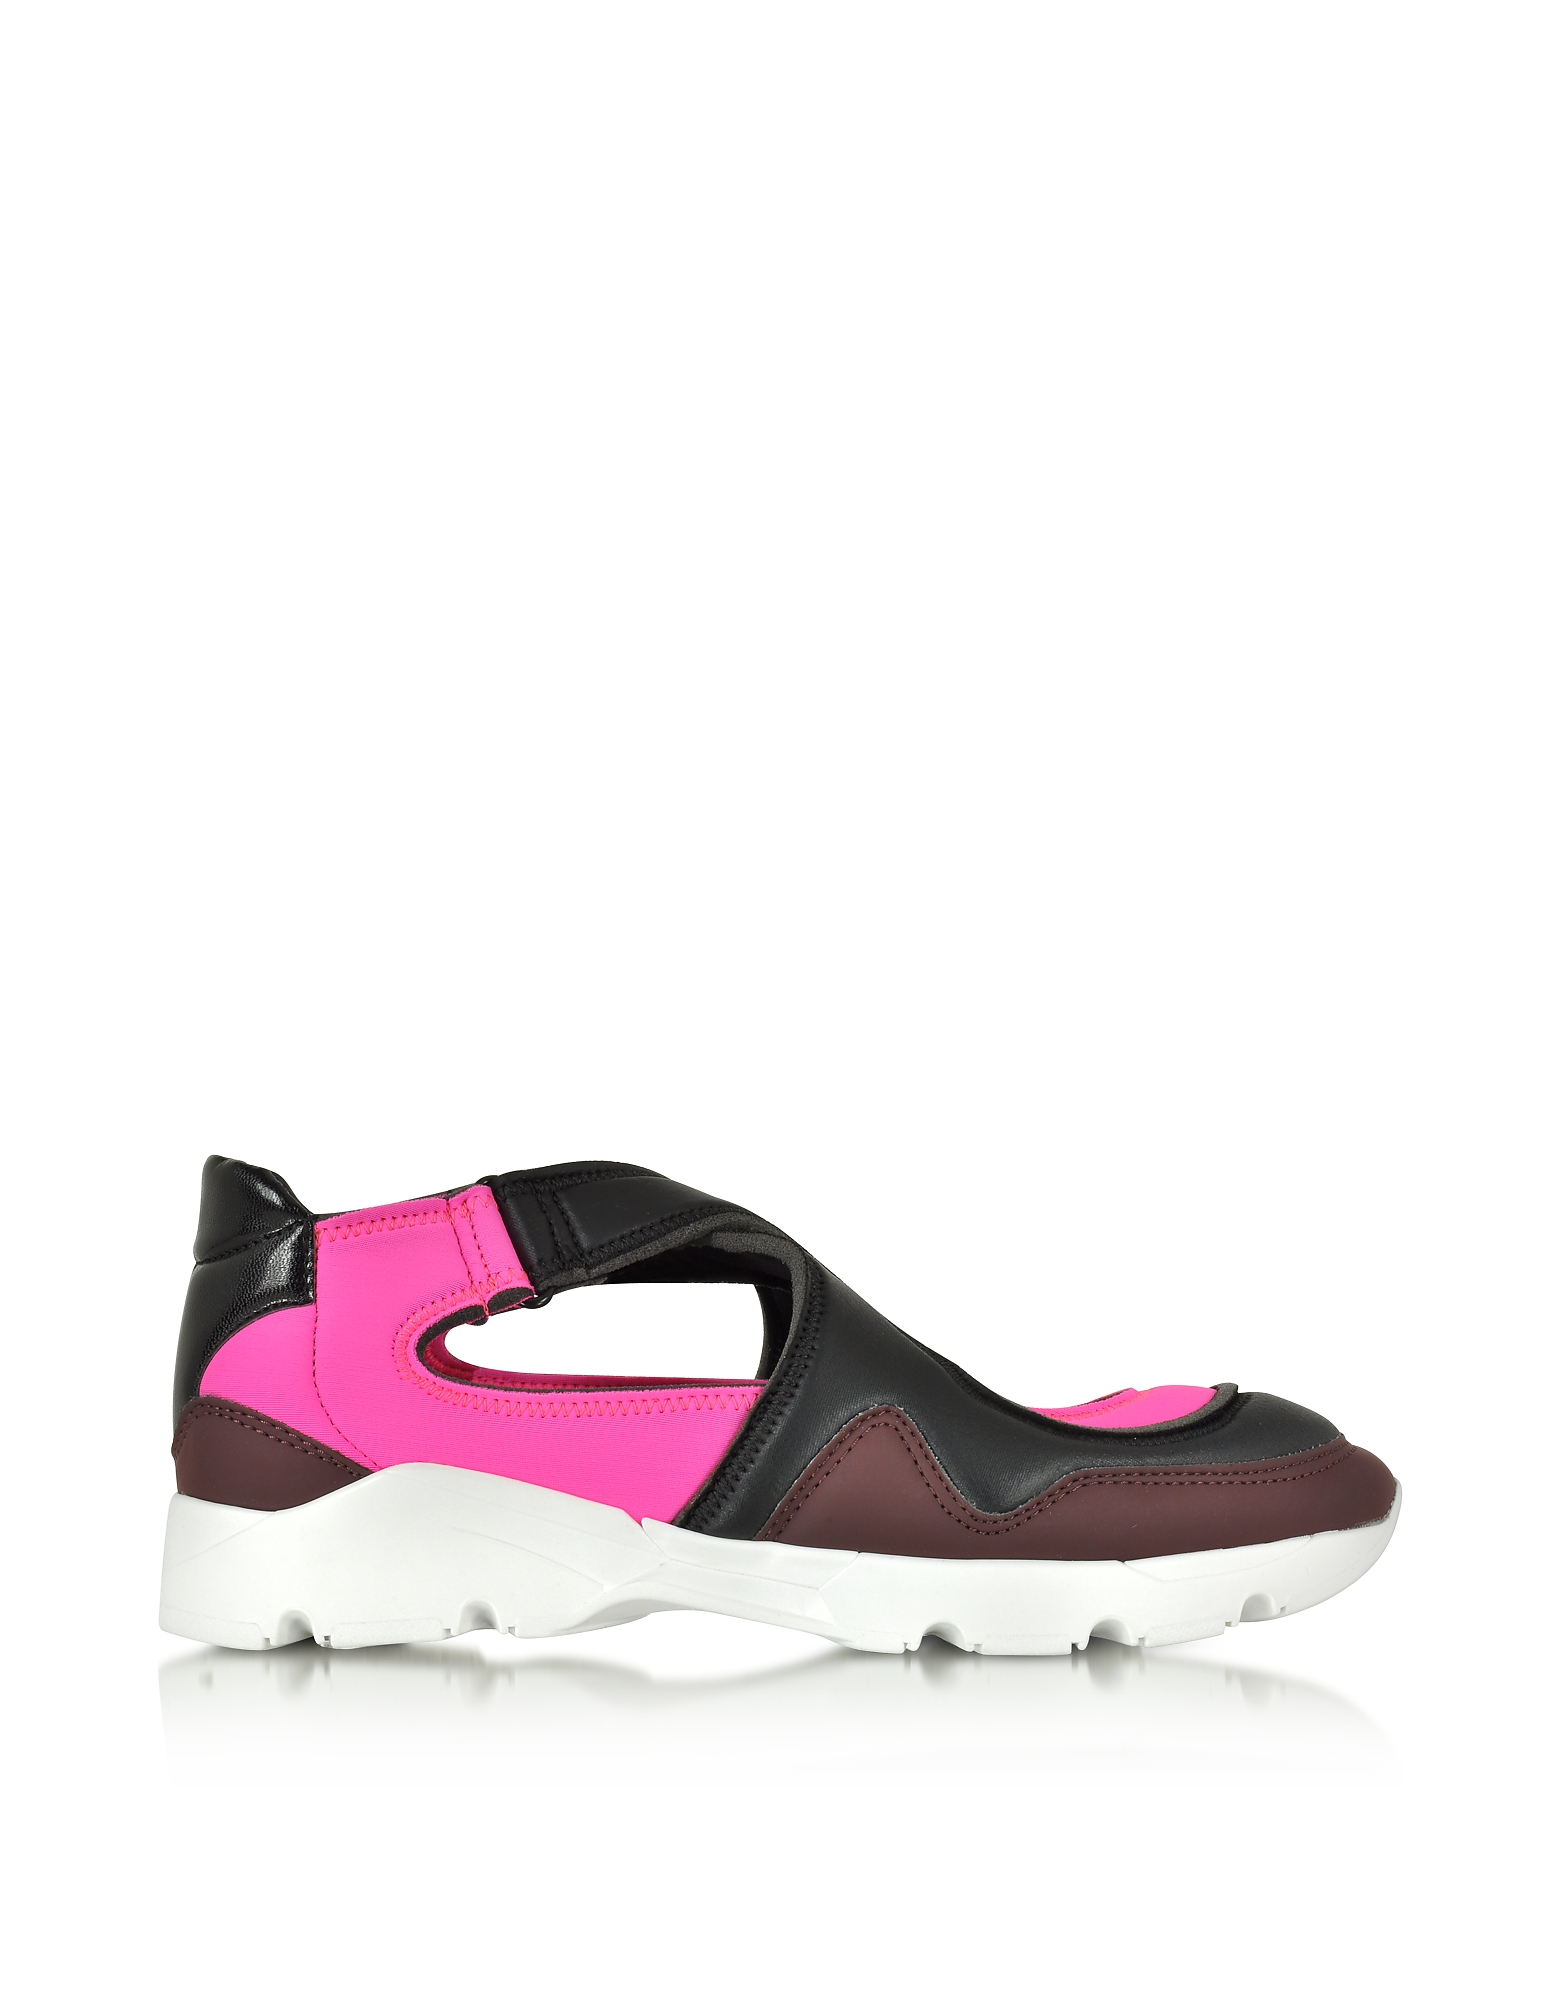 MM6 Maison Martin Margiela Shoes, Color Block Nylon and Leather Sneakers